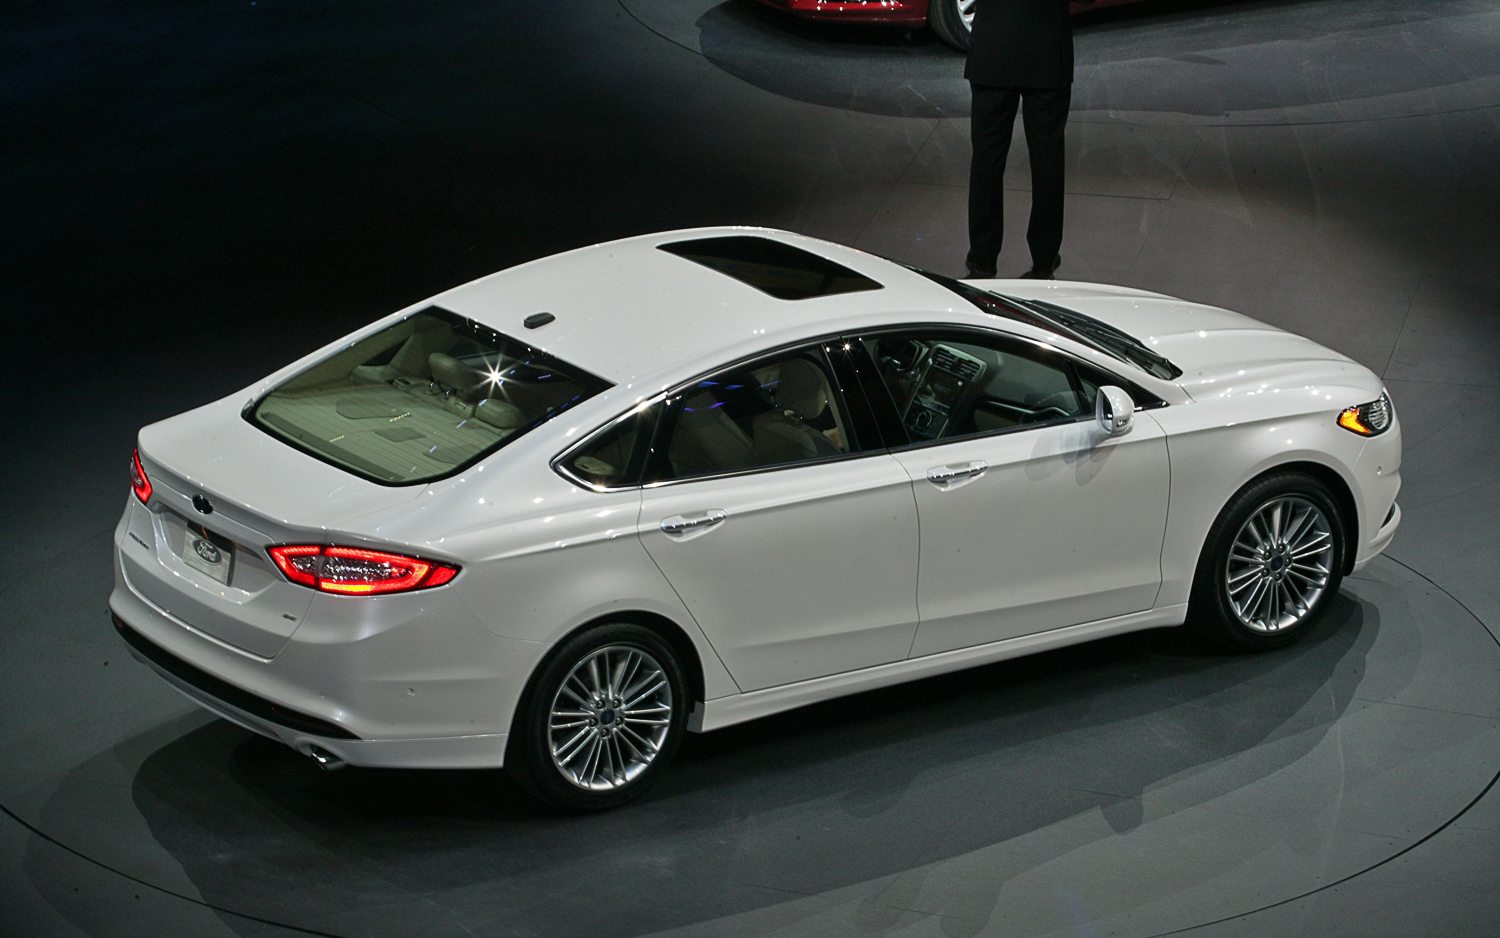 Ford Fusion photo 10